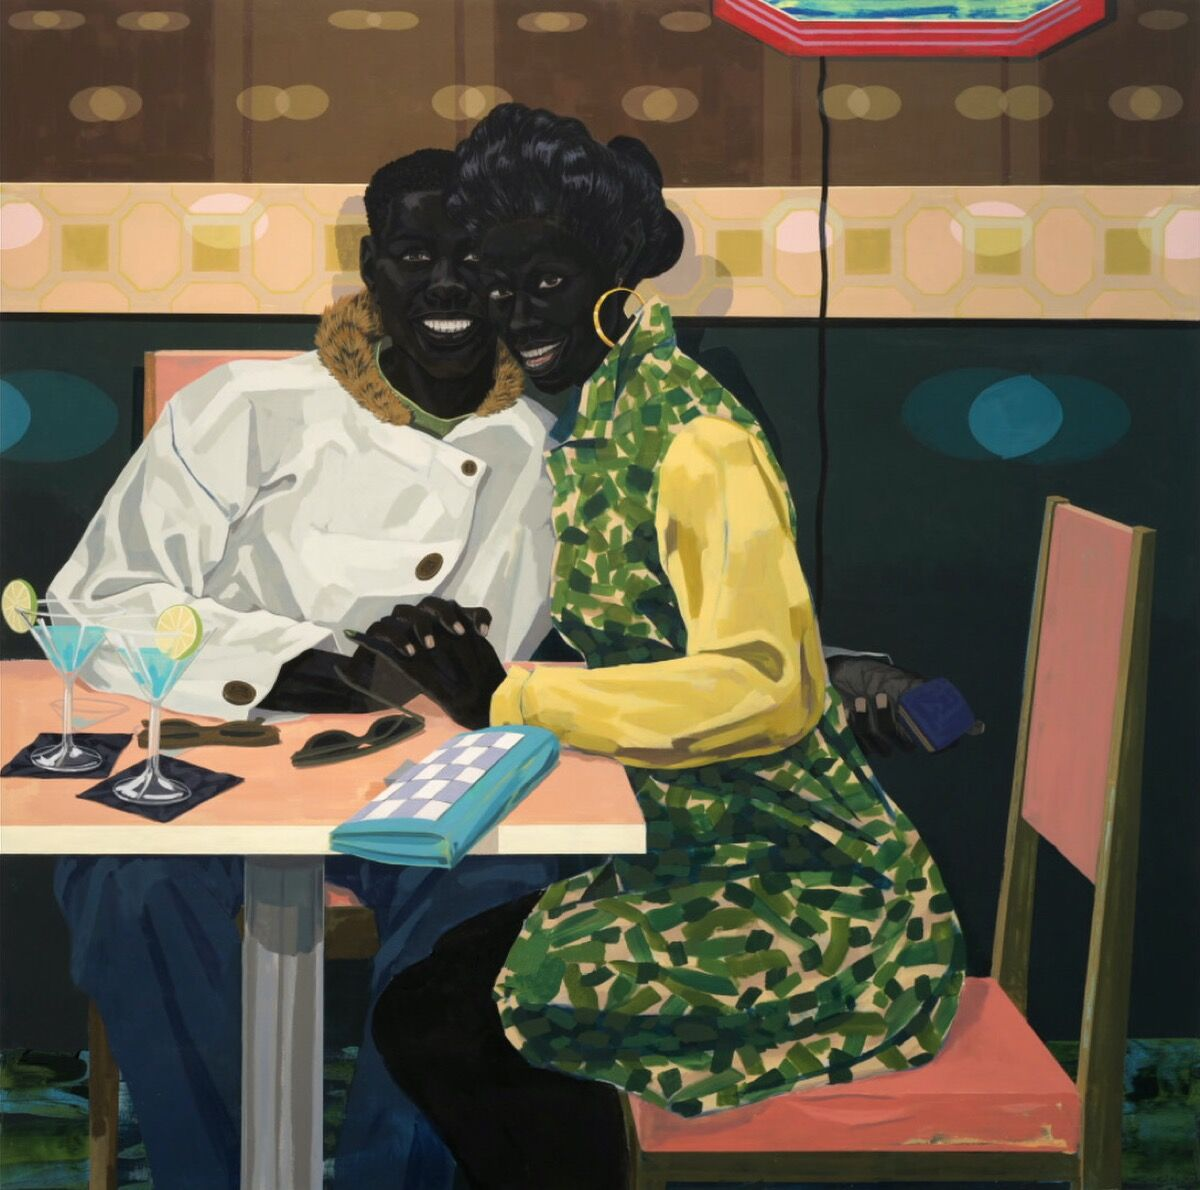 Kerry James Marshall, Untitled (Club Couple), 2014. Courtesy of the artist and HBO.